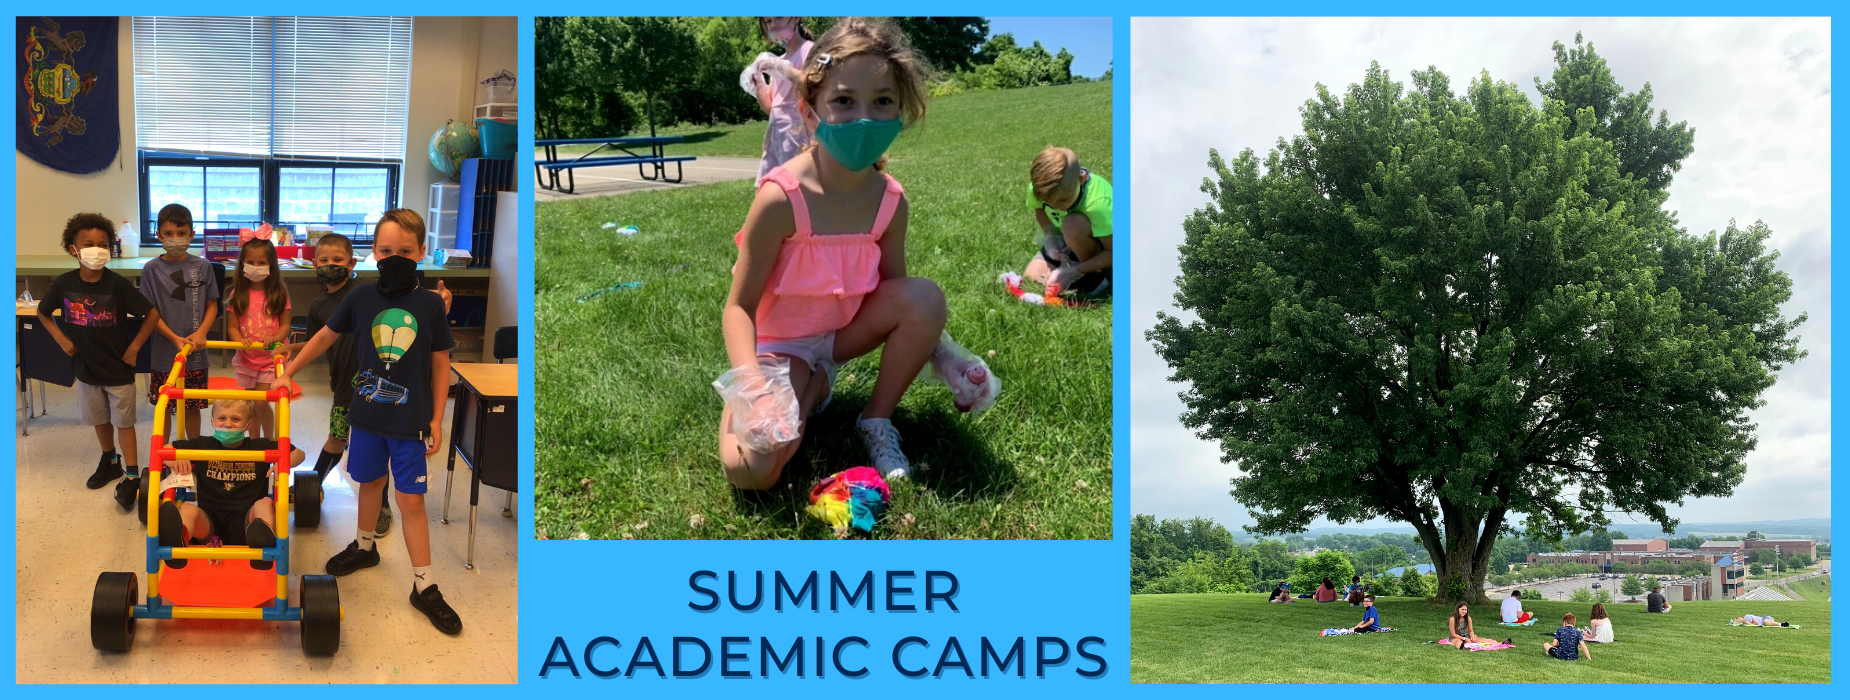 Summer Camps Collage